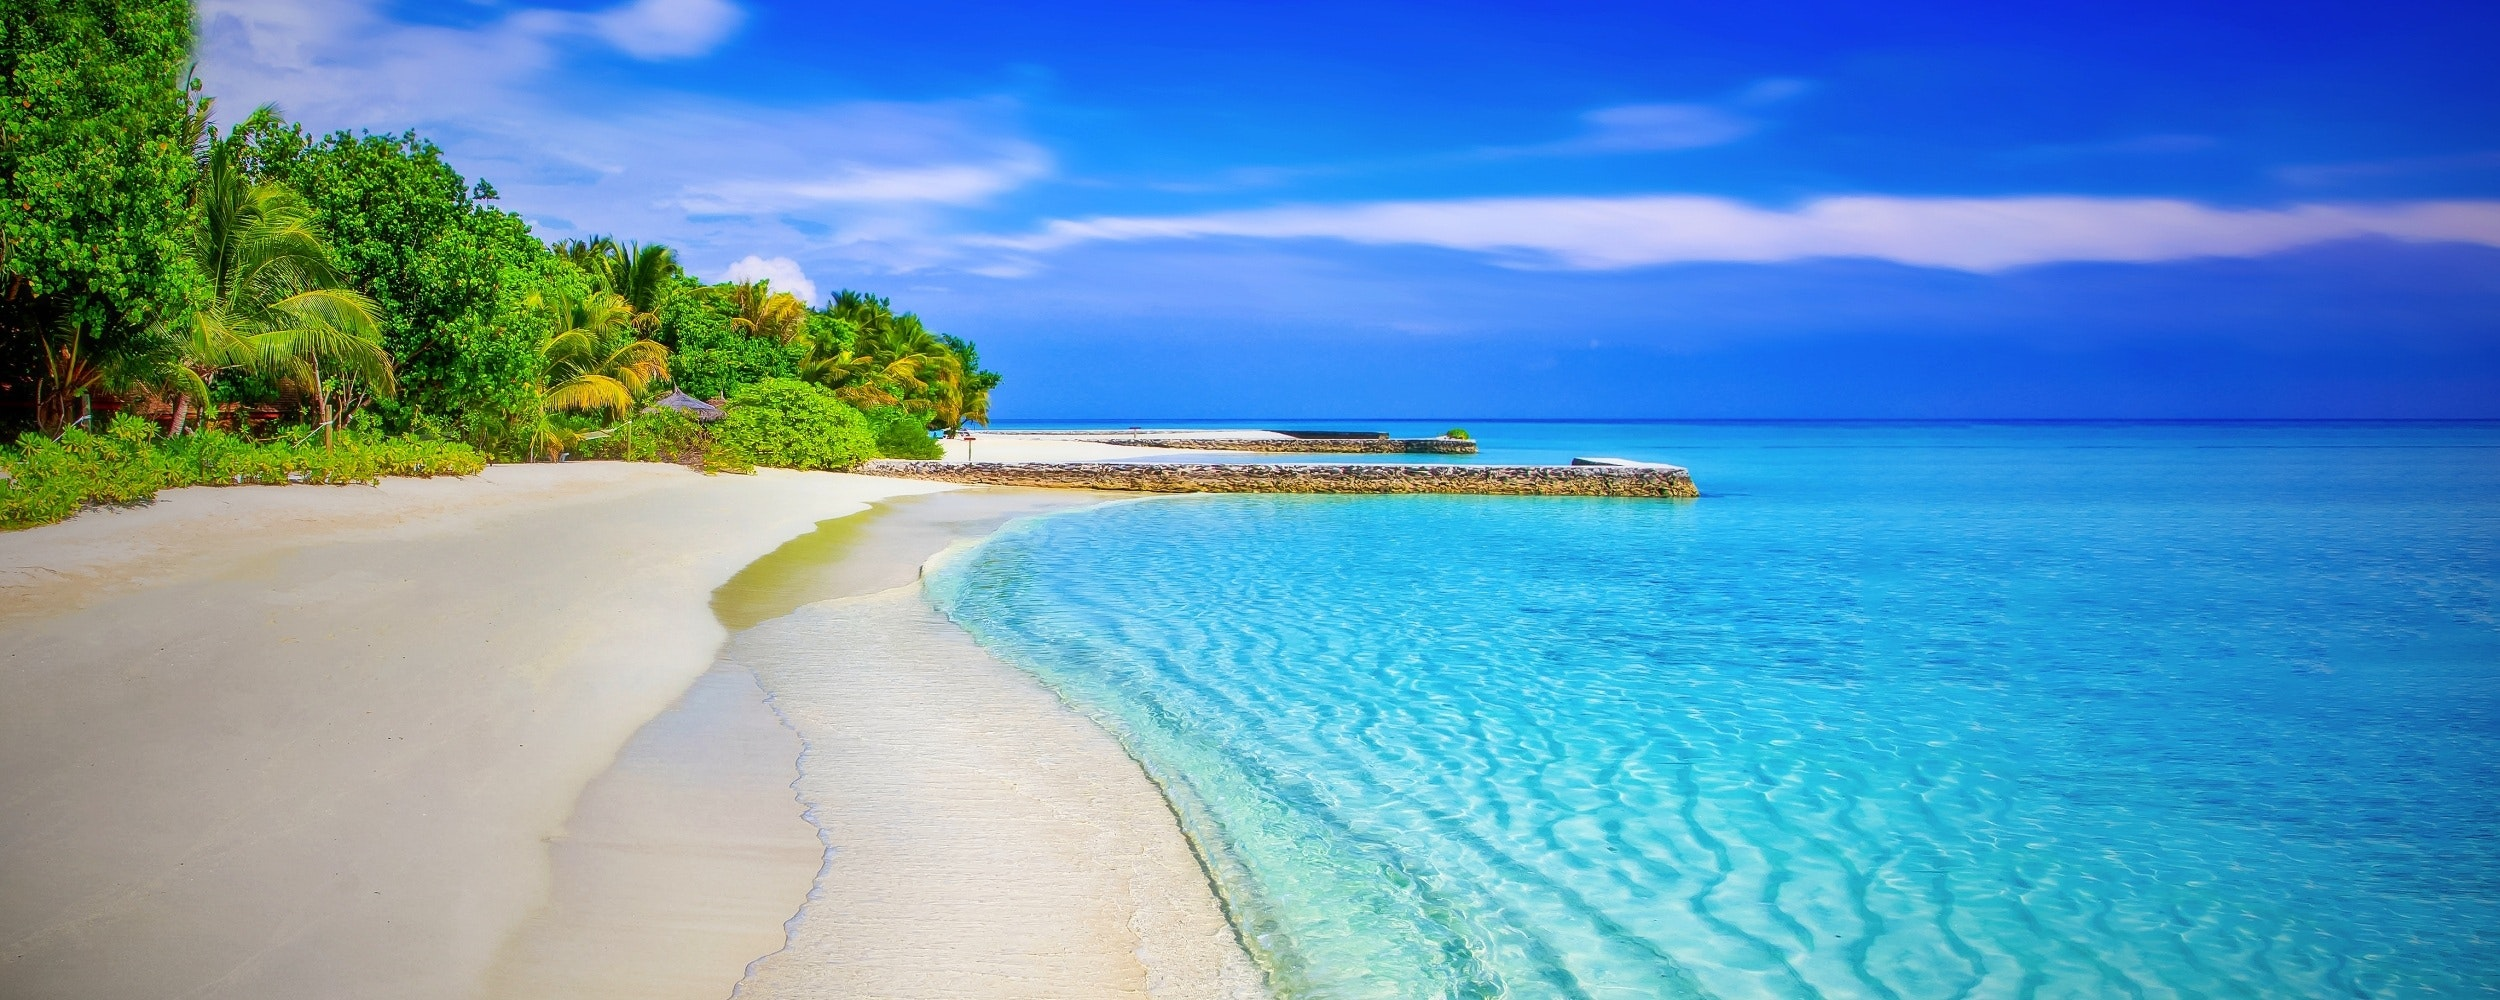 Must see Wallpaper High Resolution Beach - pexels-photo-248797  Image_444583.jpg\u0026fm\u003djpg